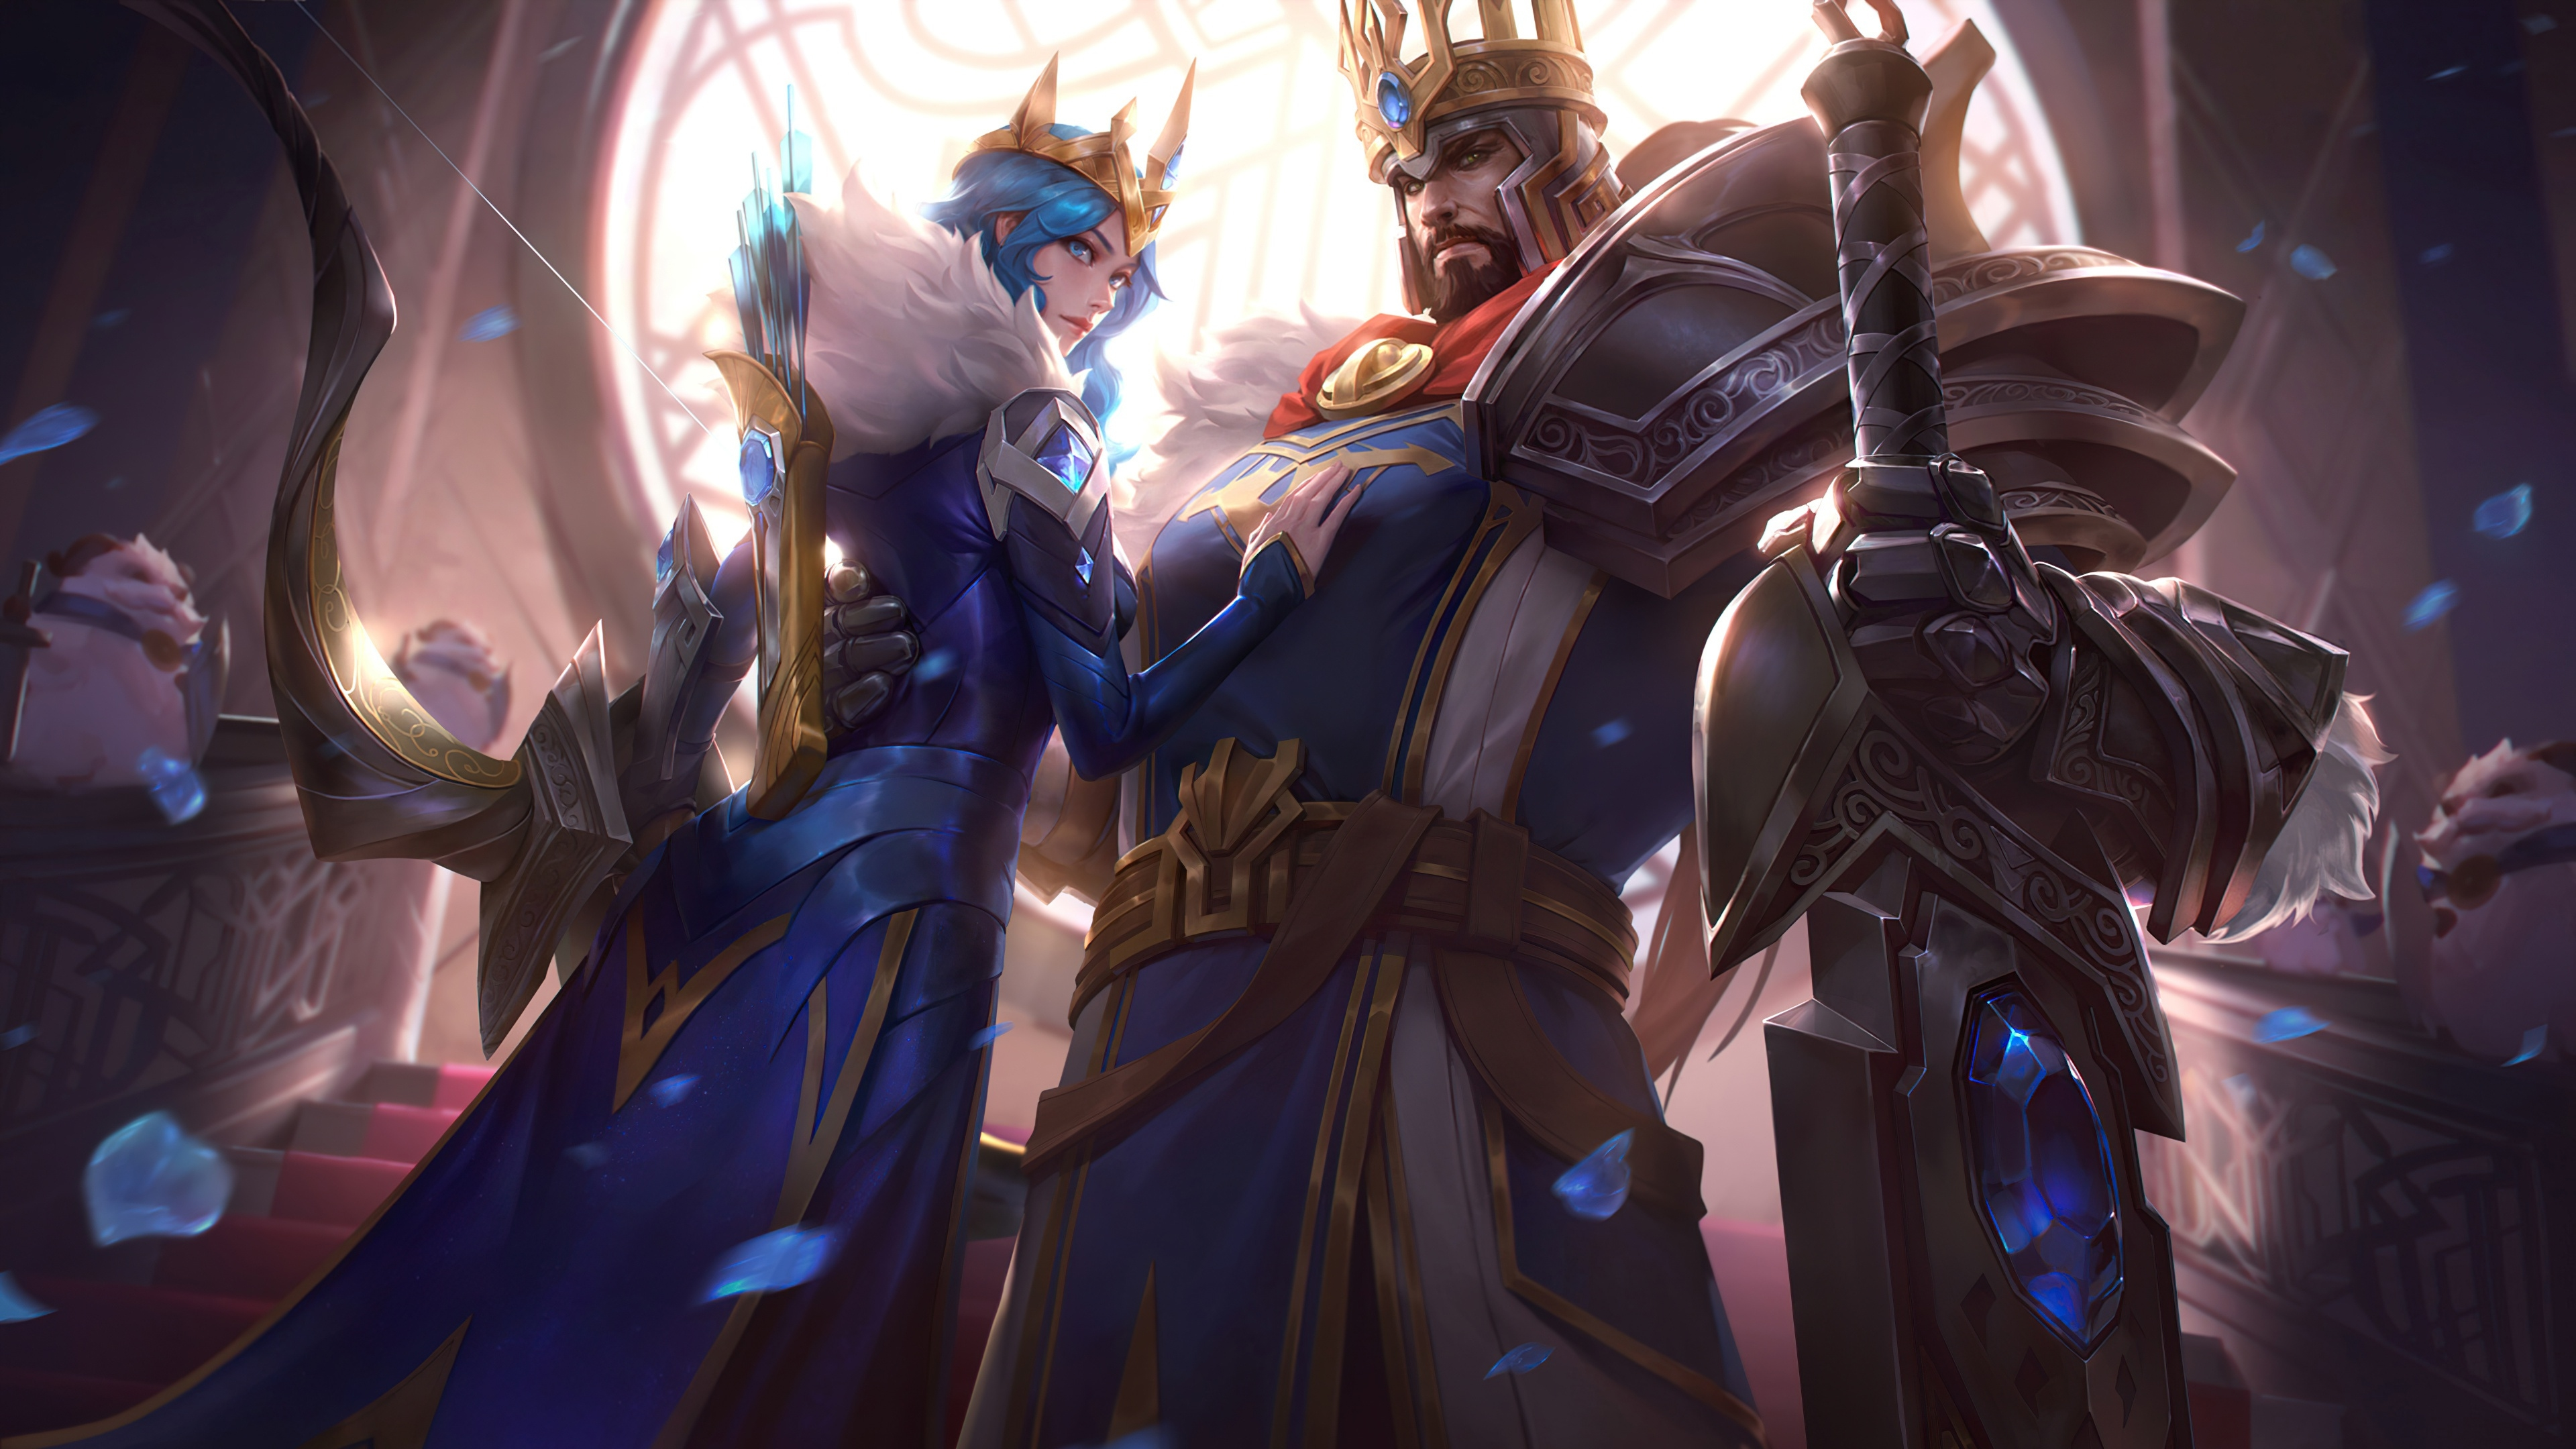 2560x1440 Ashe In League Of Legends 1440p Resolution Wallpaper Hd Games 4k Wallpapers Images Photos And Background